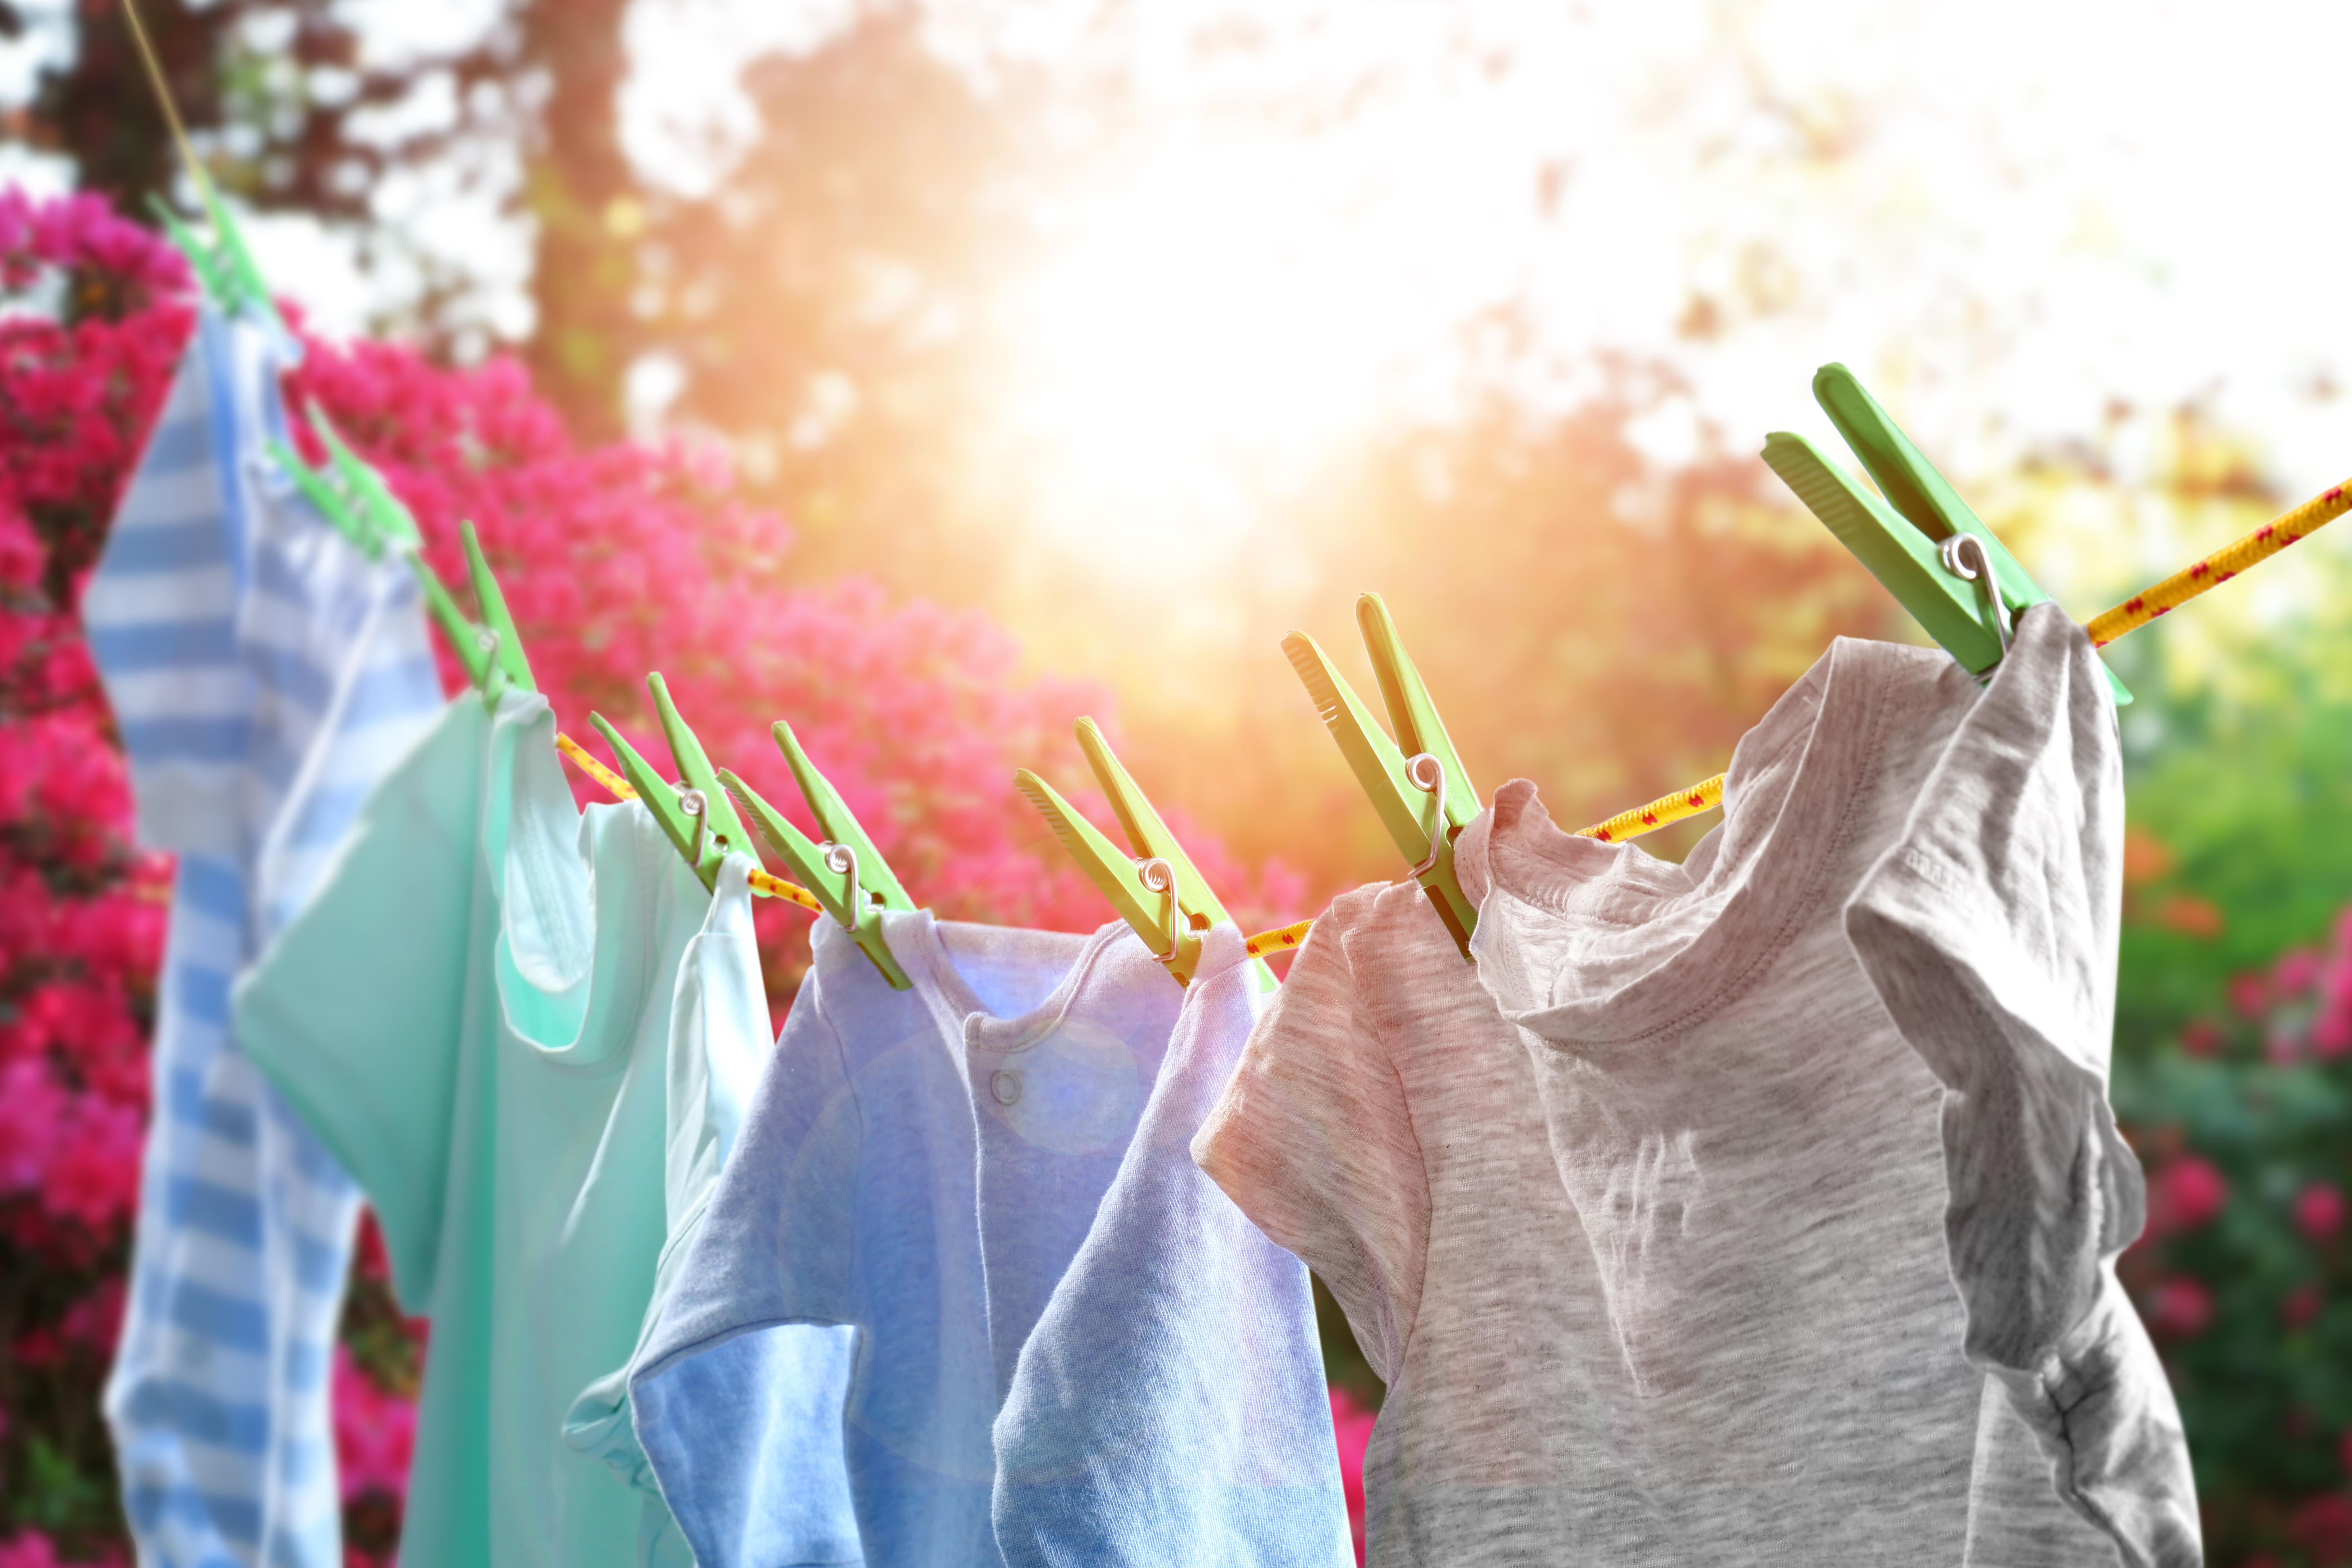 clothes hanging on washing line